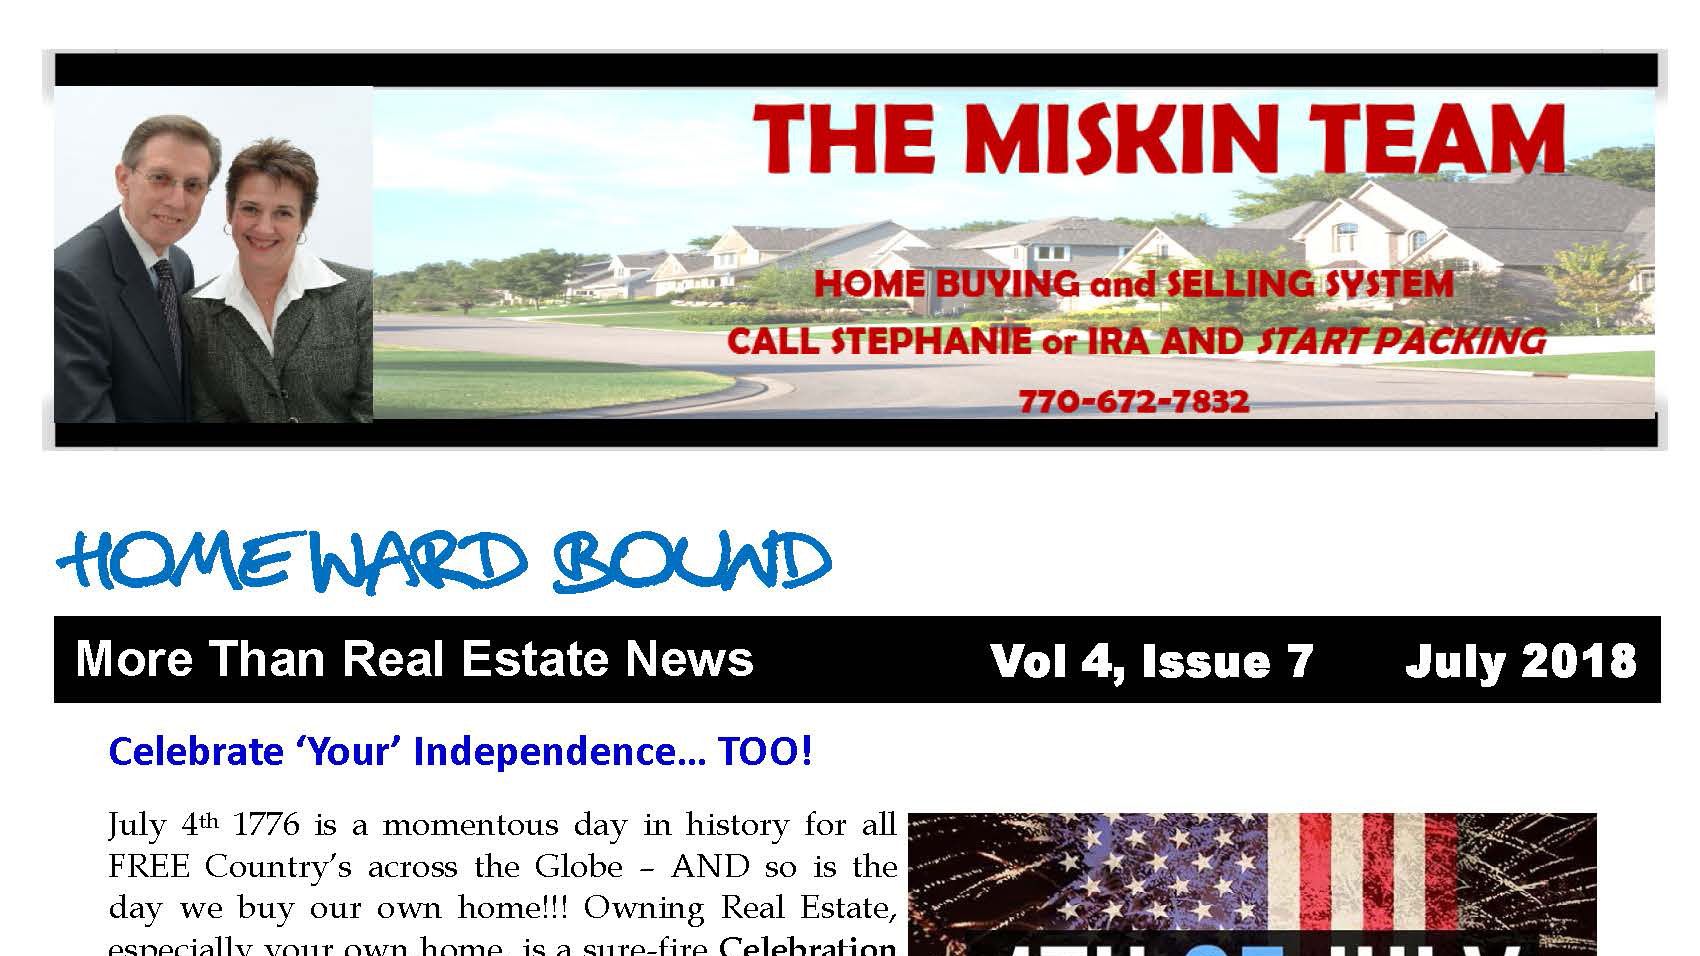 Home'Ward Bound Monthly Miskin Team Newsletter July 2018